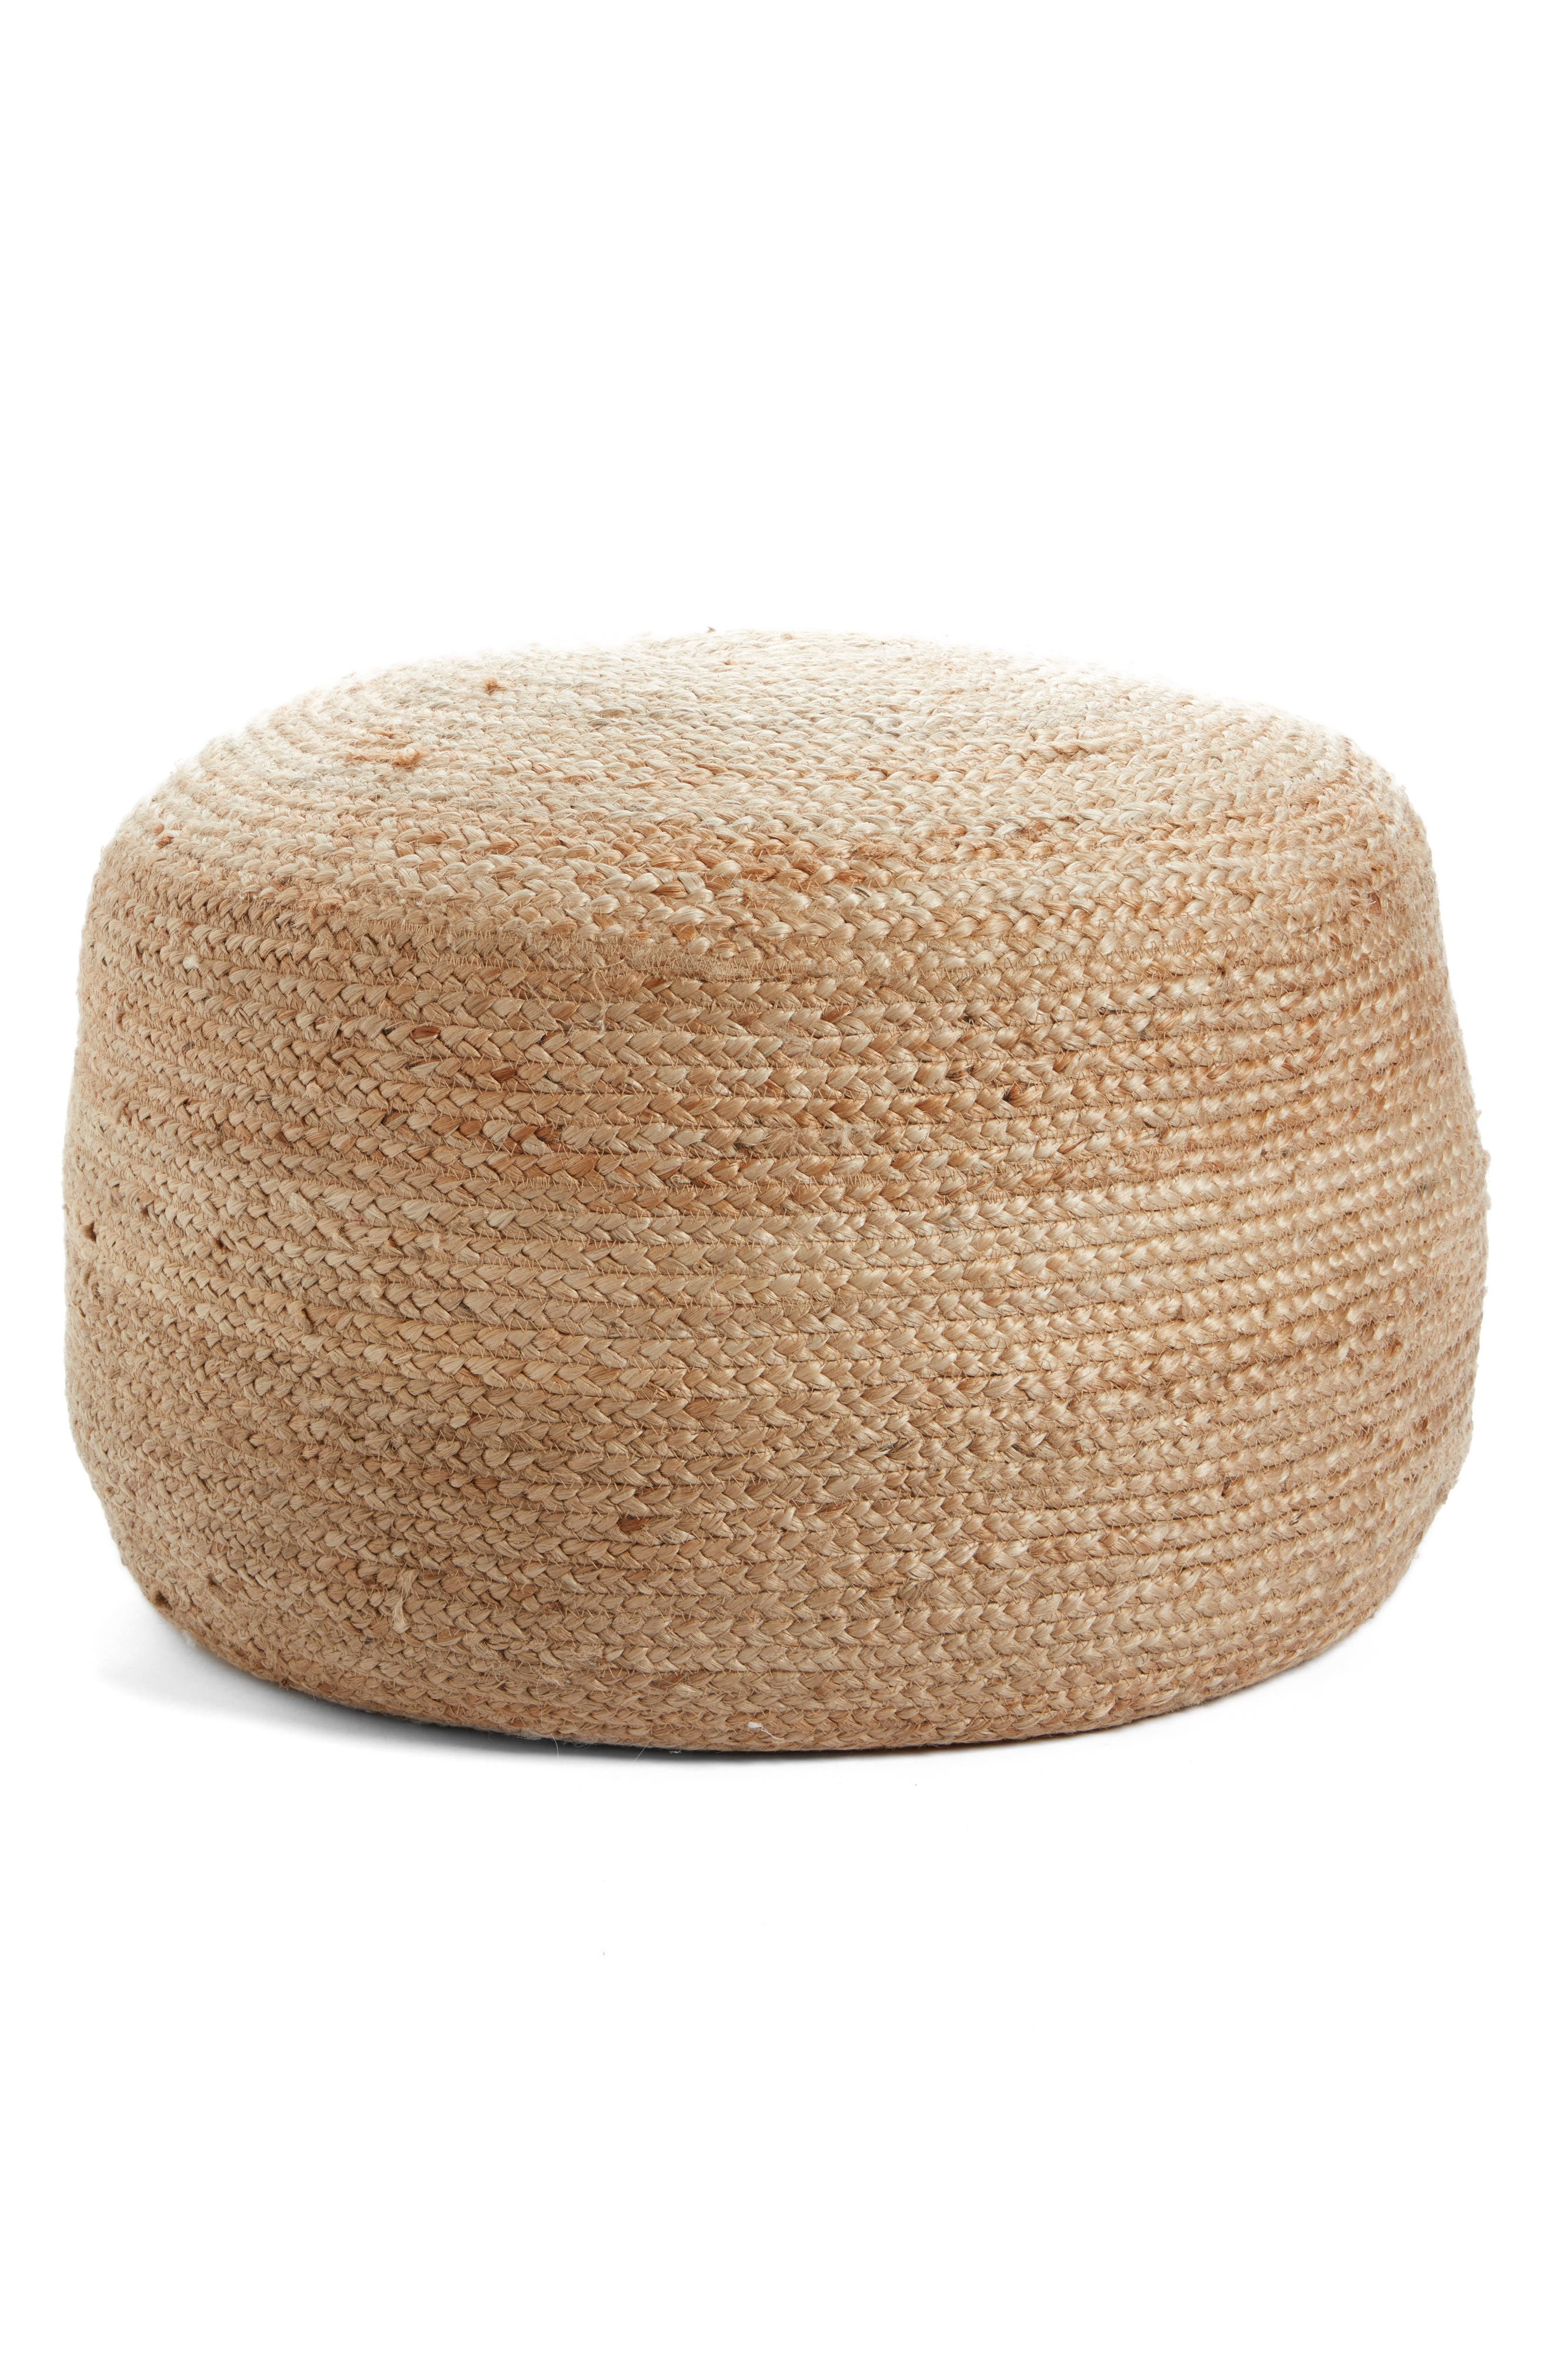 Indoor/Outdoor Jute Pouf,                         Main,                         color, Natural